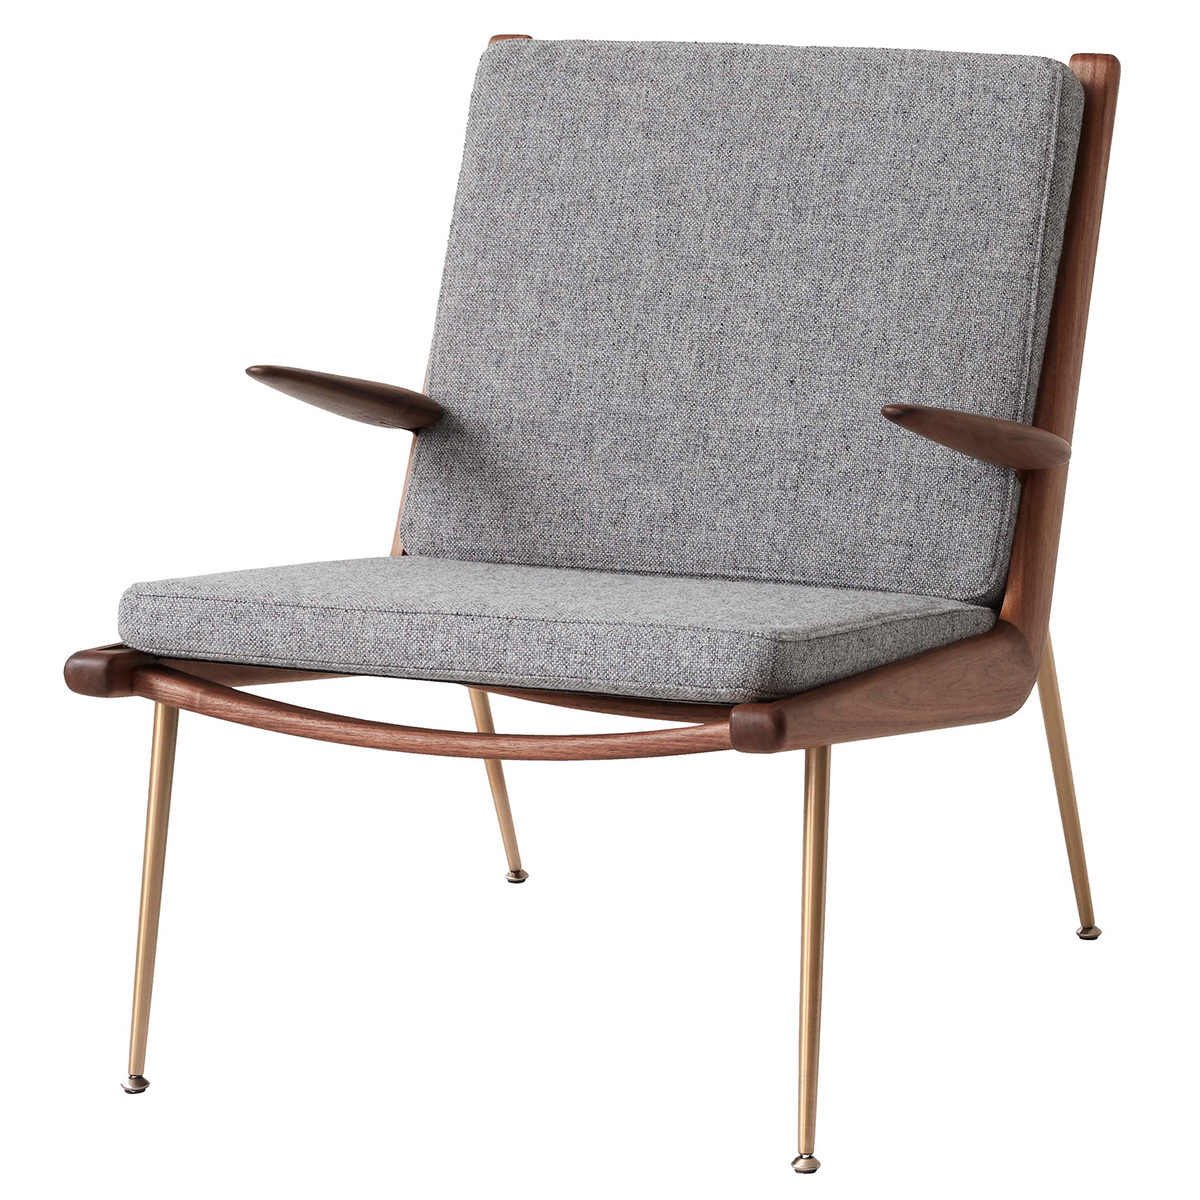 &Tradition Boomerang HM2 lounge chair, Hallingdal 130 - oiled walnut from &Tradition